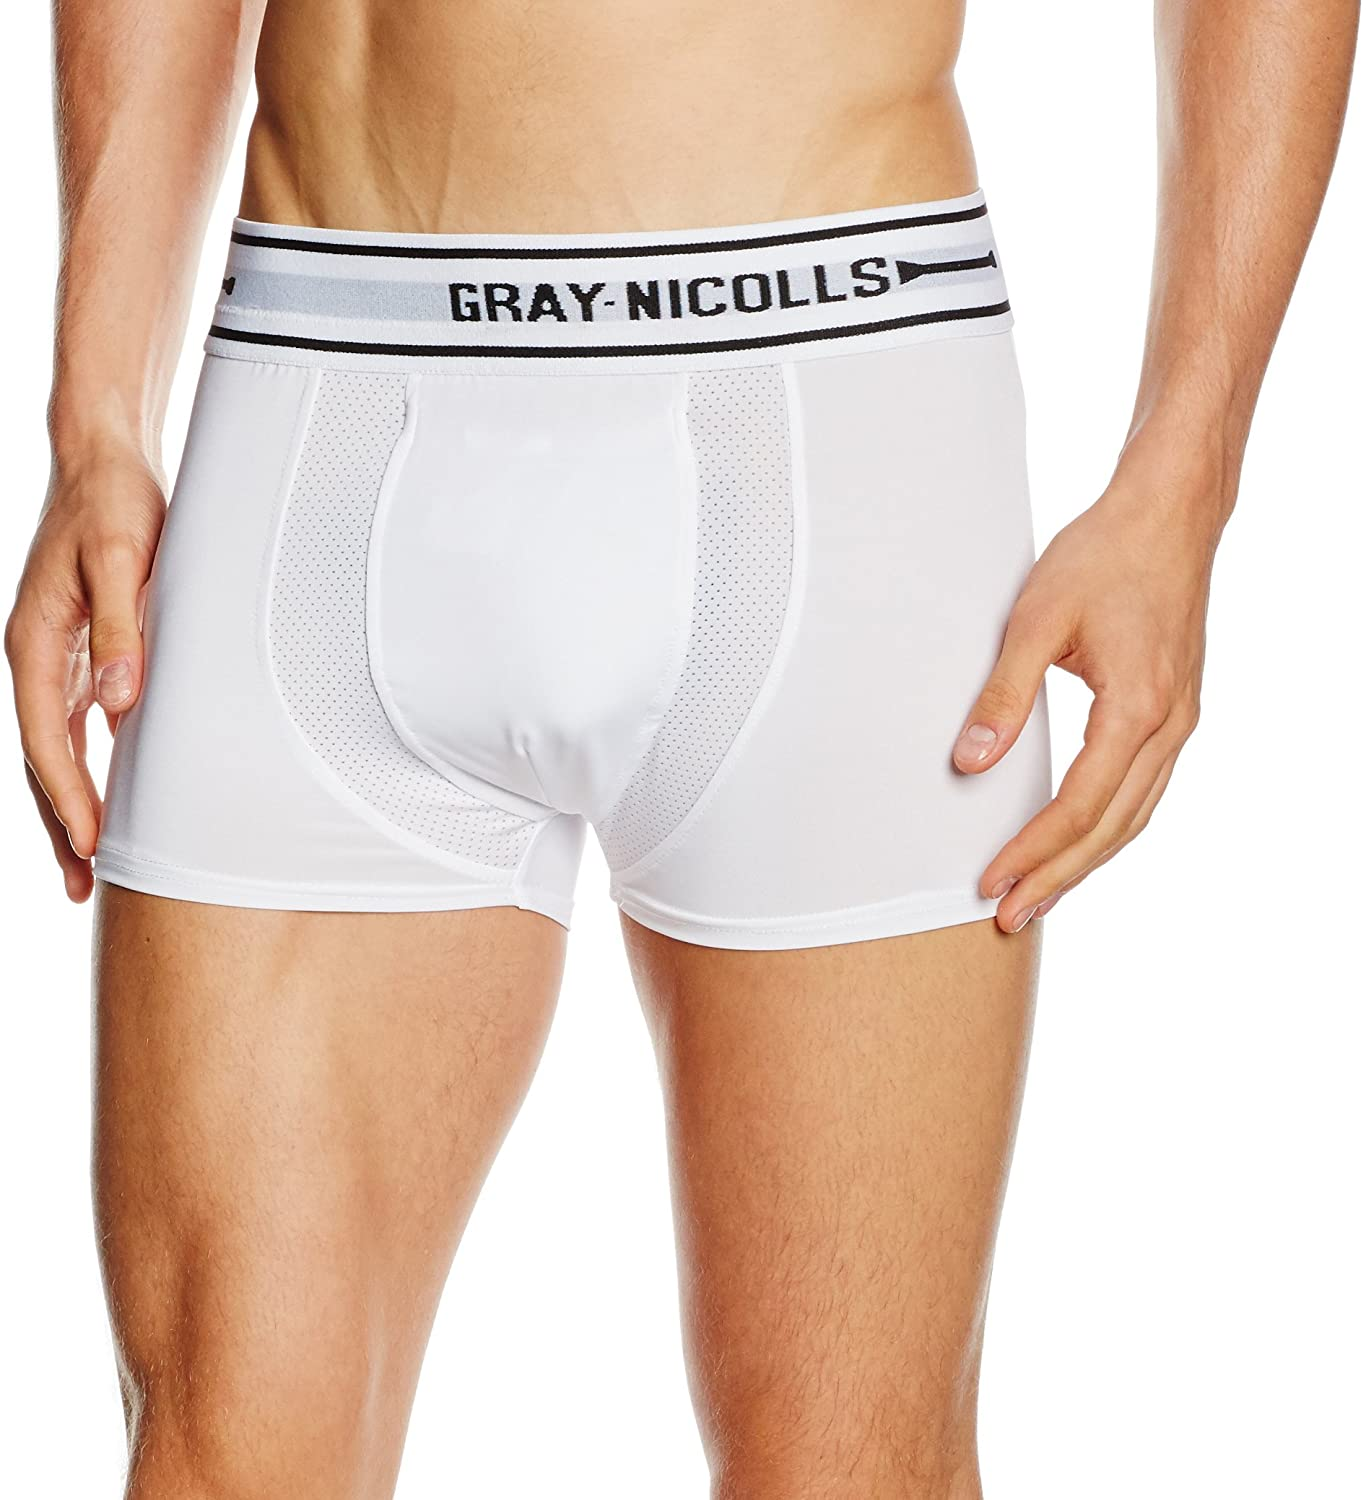 Gray-Nicolls Coverpoint Trunks 2 Extra Large